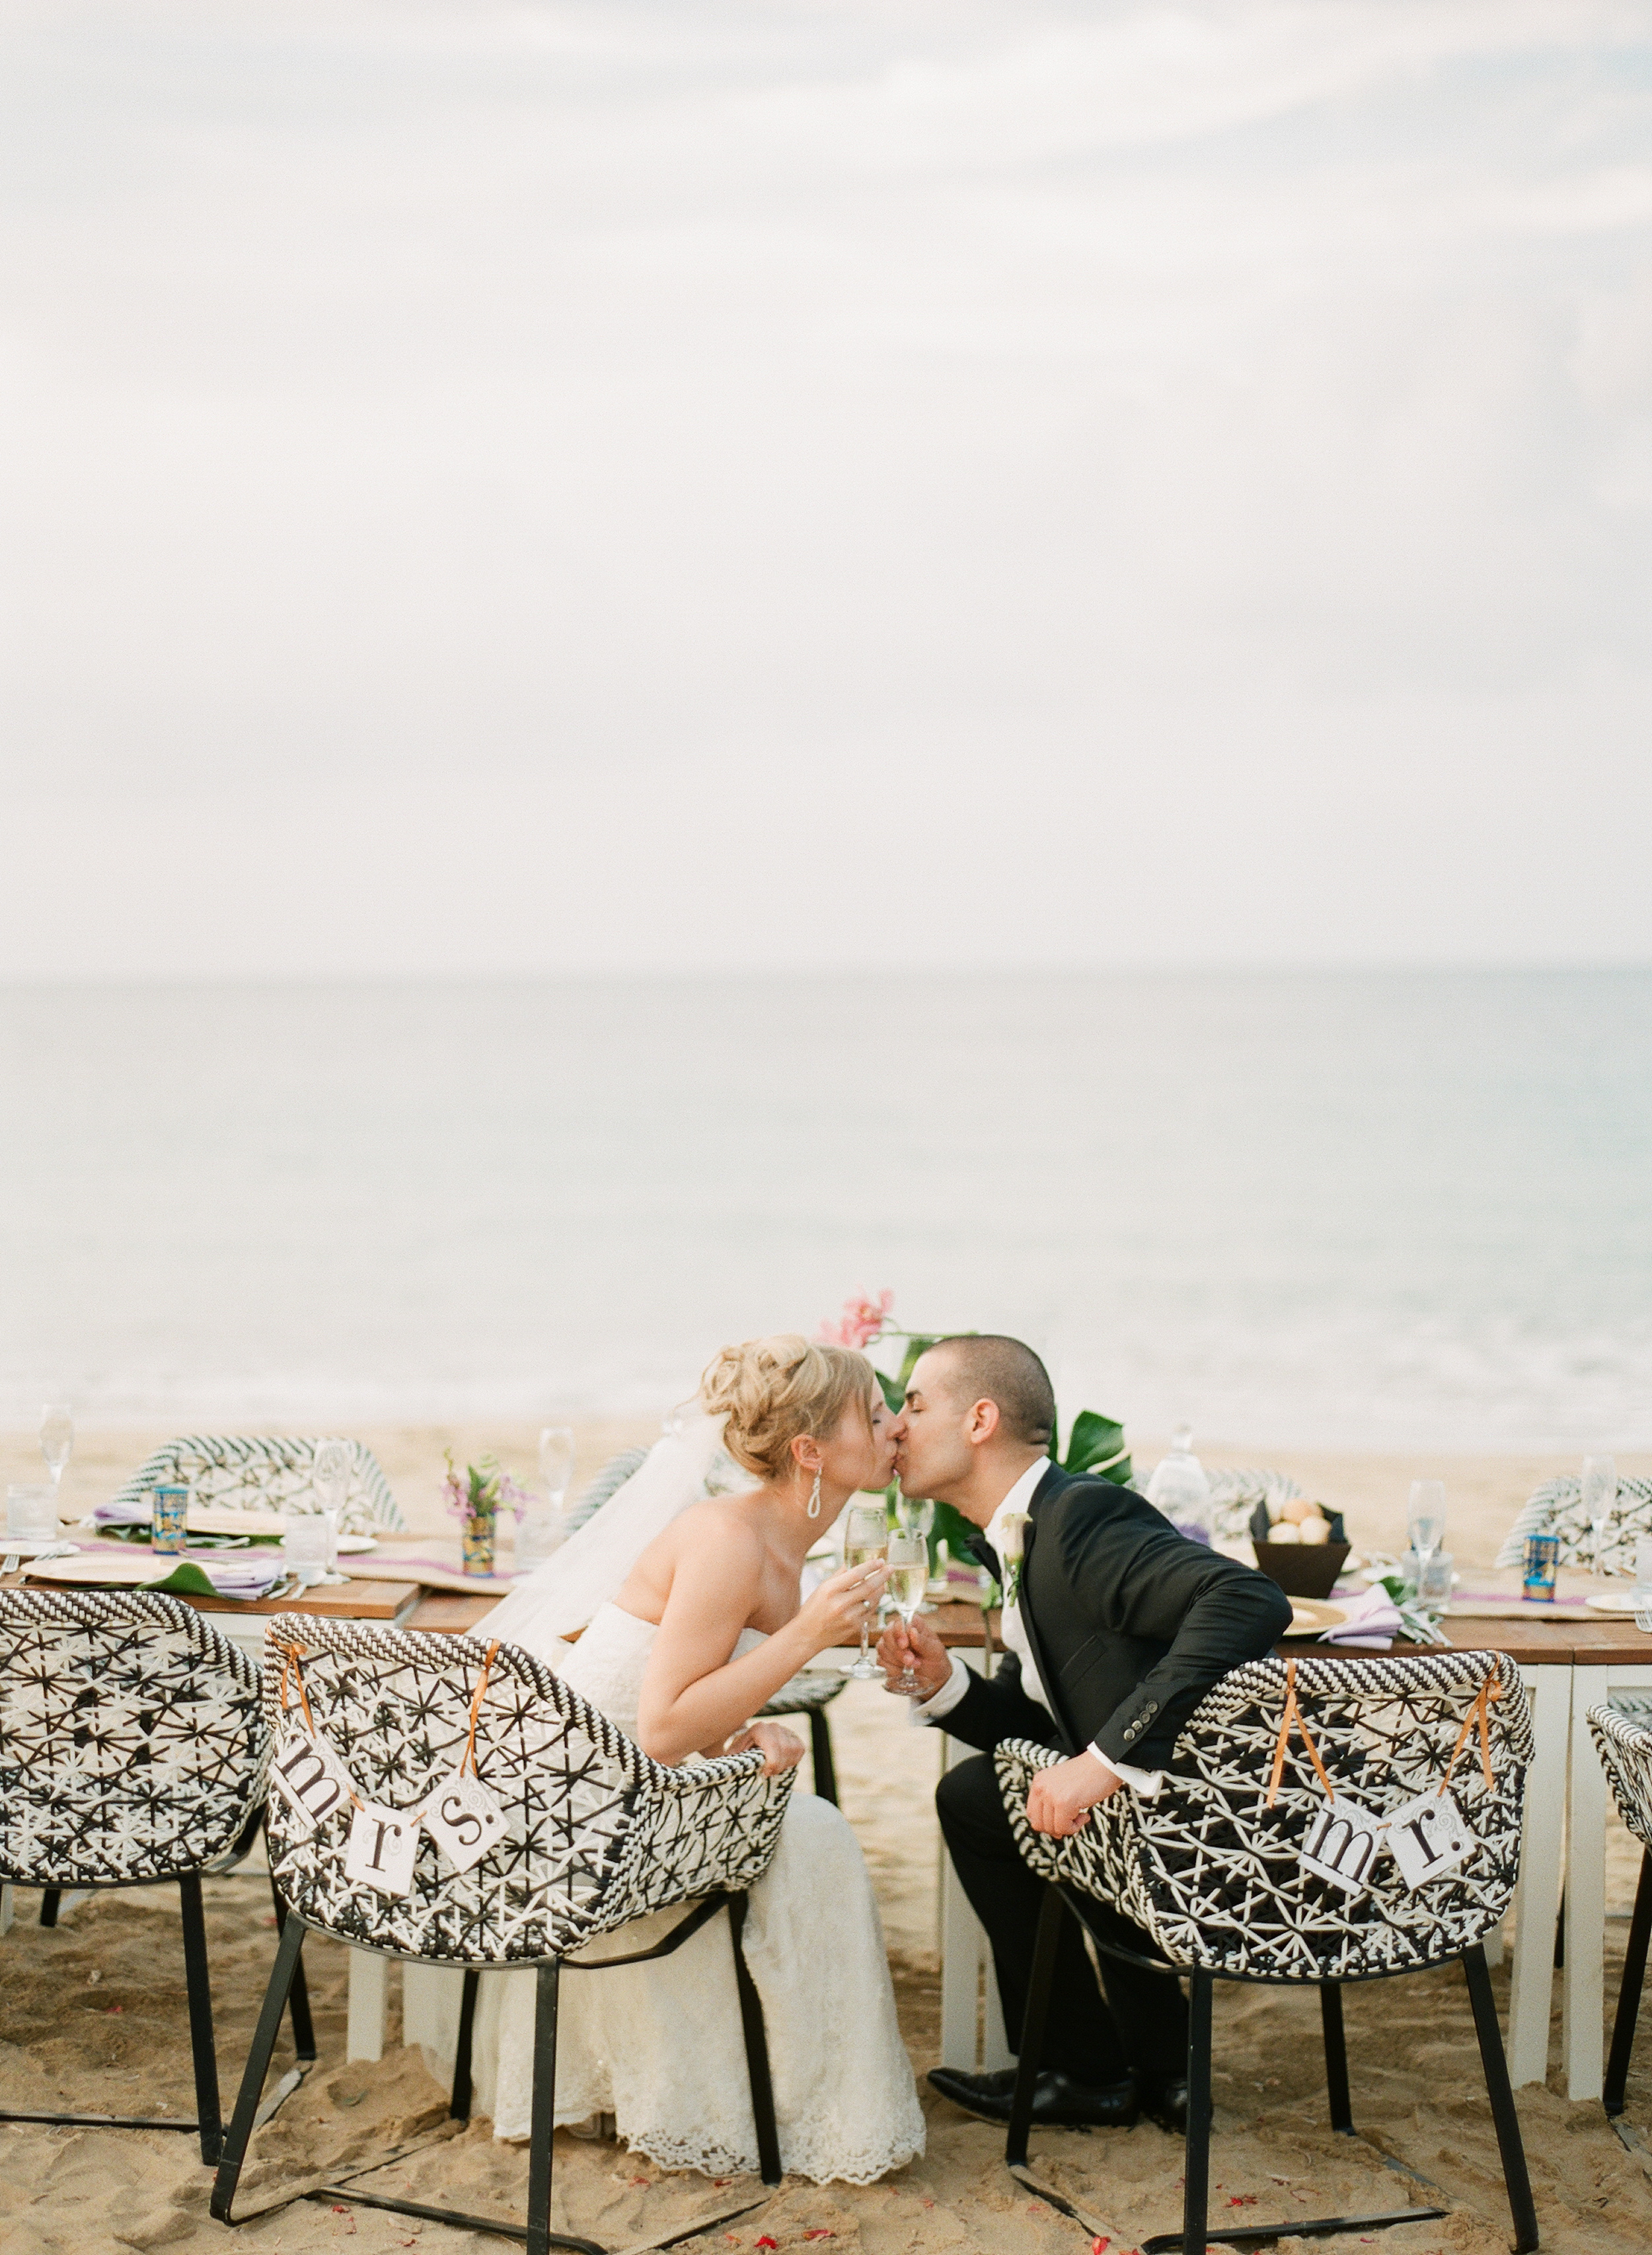 Destination wedding photographer, Lexia Frank, photographs this modern wedding at the W hotel in Vieques Island, where the bride chose to have the wedding reception on the beach with modern chairs and decor for her wedding. she is a film photographer specializing in destination weddings and luxury weddings worldwide.